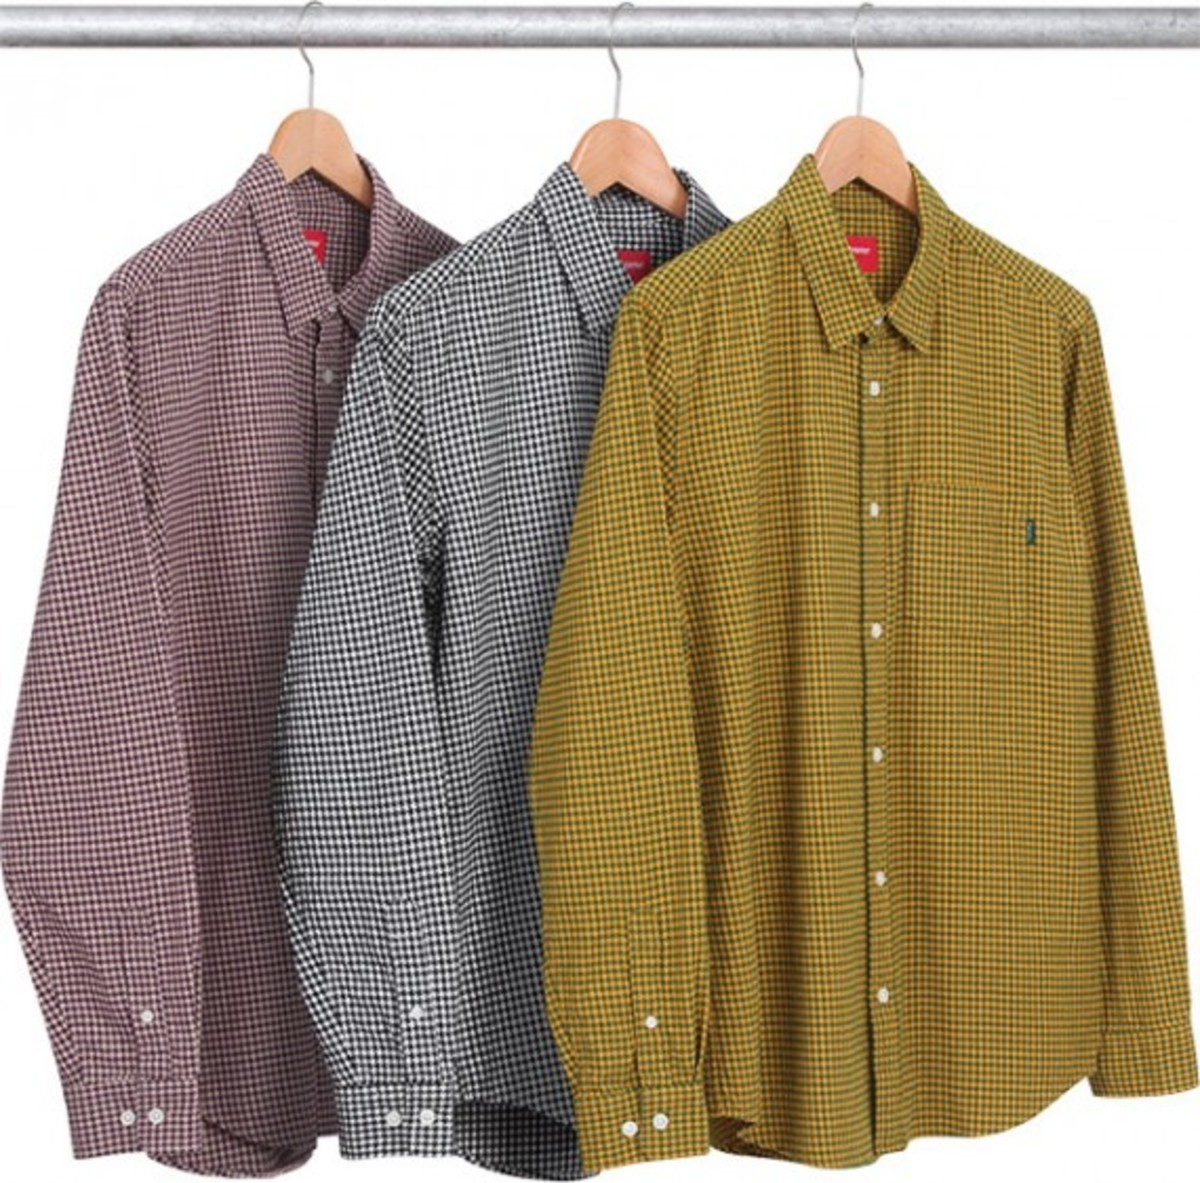 supreme-fall-winter-2012-apparel-05